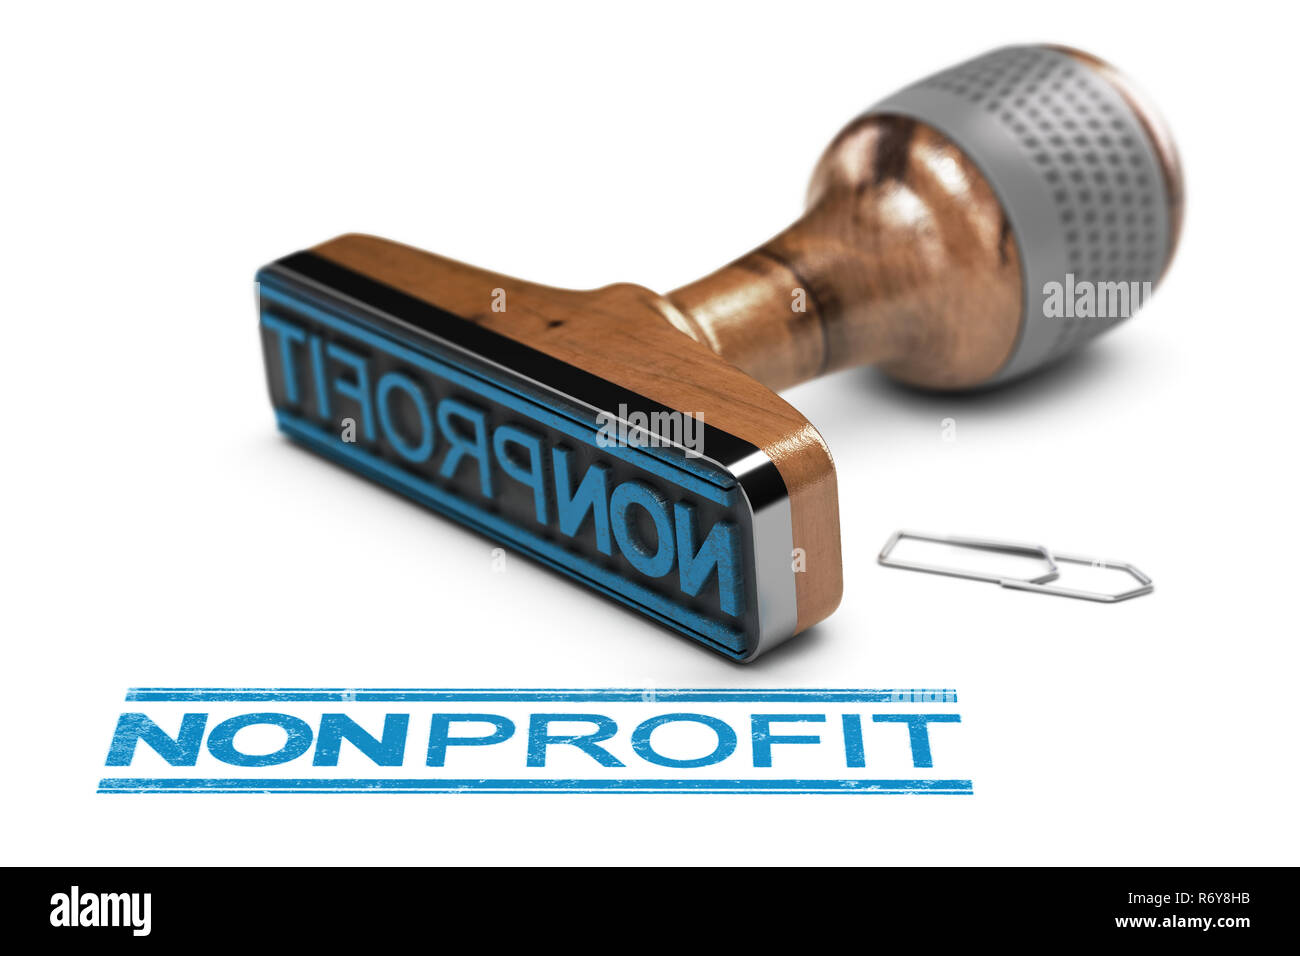 Nonprofit Organization or Association, Rubber Stamp Over White Background - Stock Image